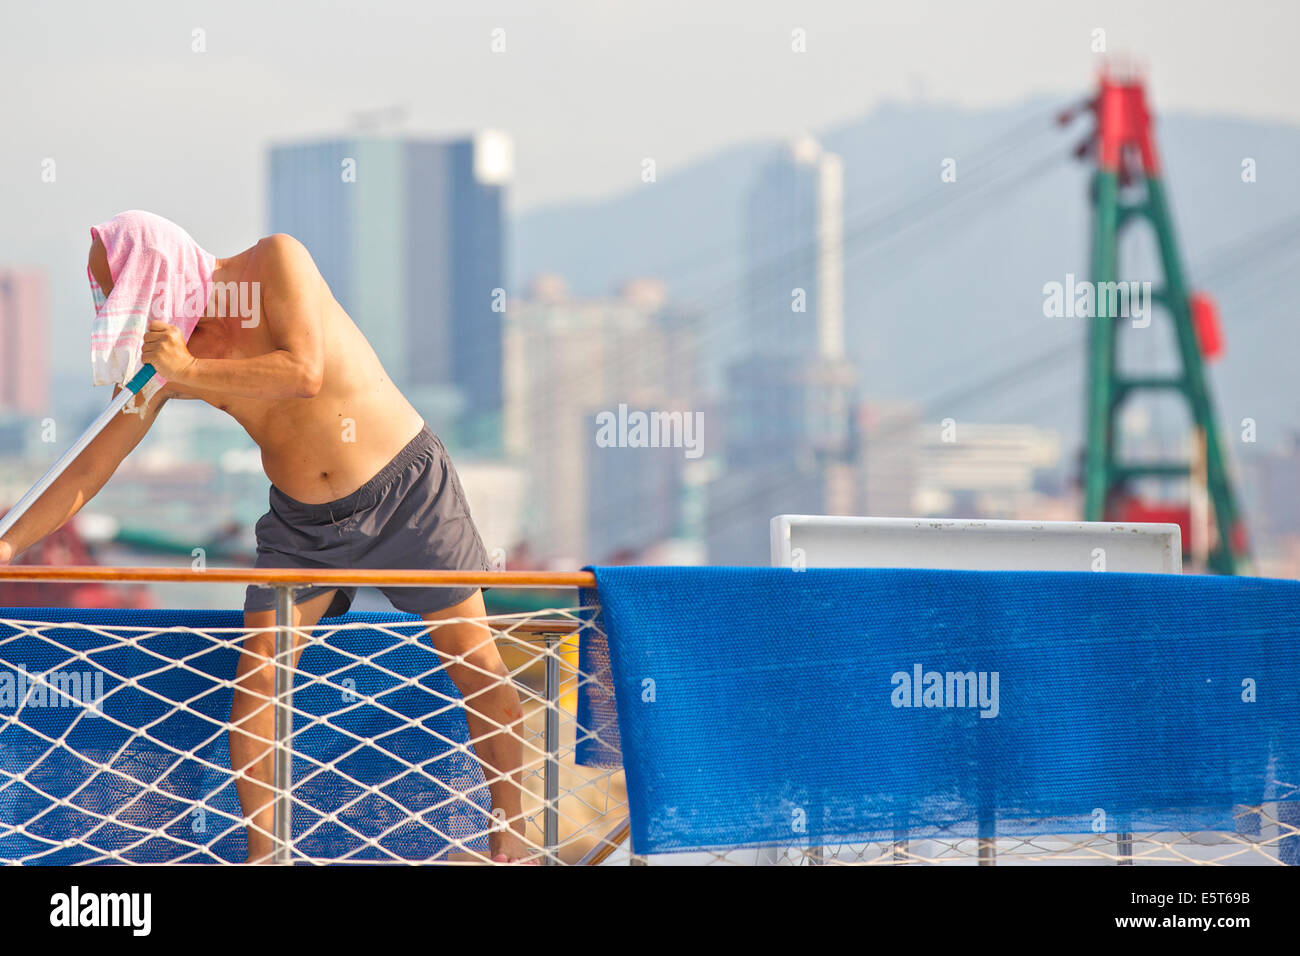 Scrubbing Decks. Chinese Man Cleans The Decks Of A Boat In The Causeway Bay Typhoon Shelter, Hong Kong. - Stock Image